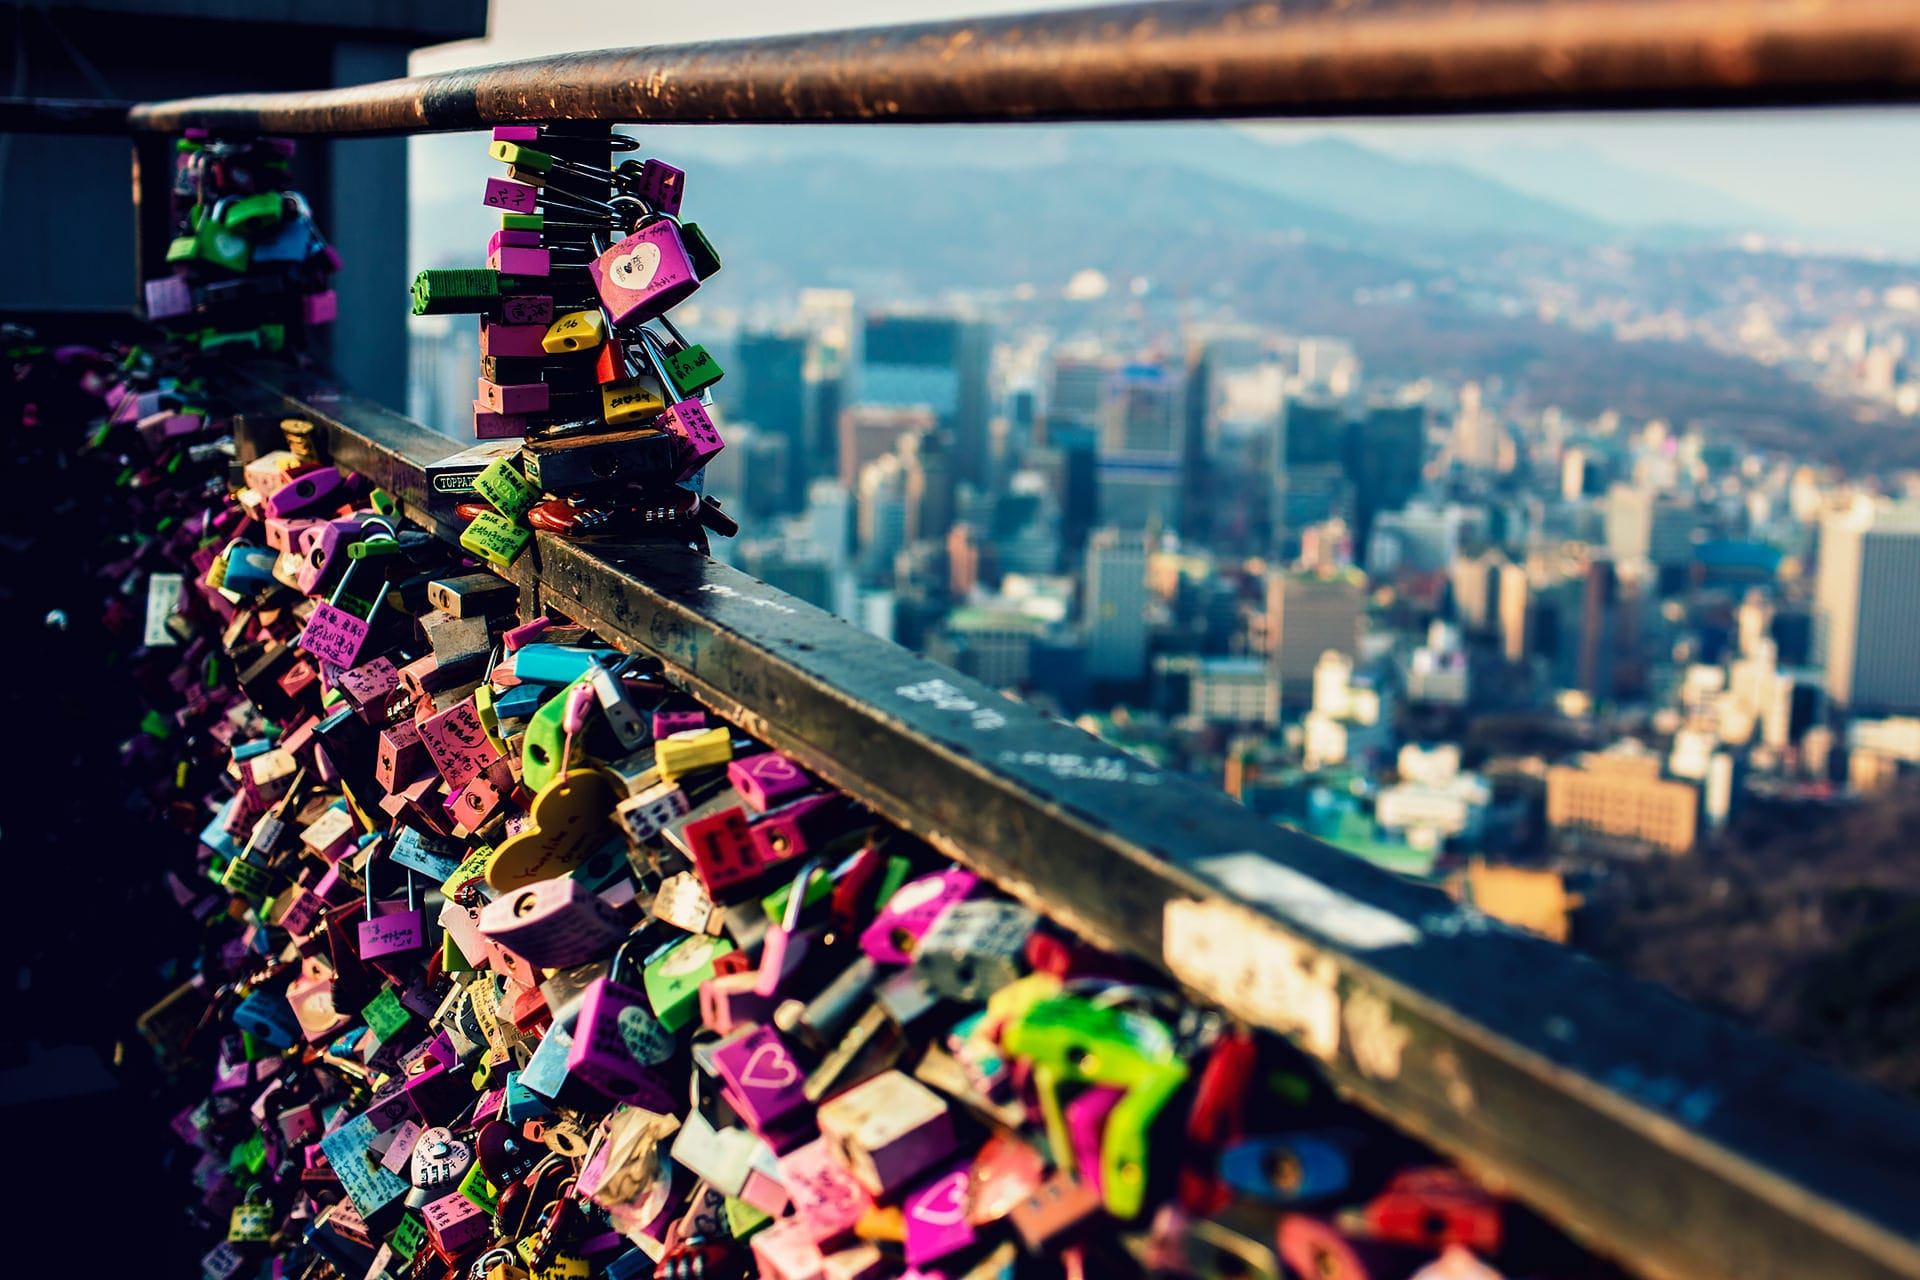 The popular Love Locks at N Seoul Tower with a view of the city of Seoul in the background